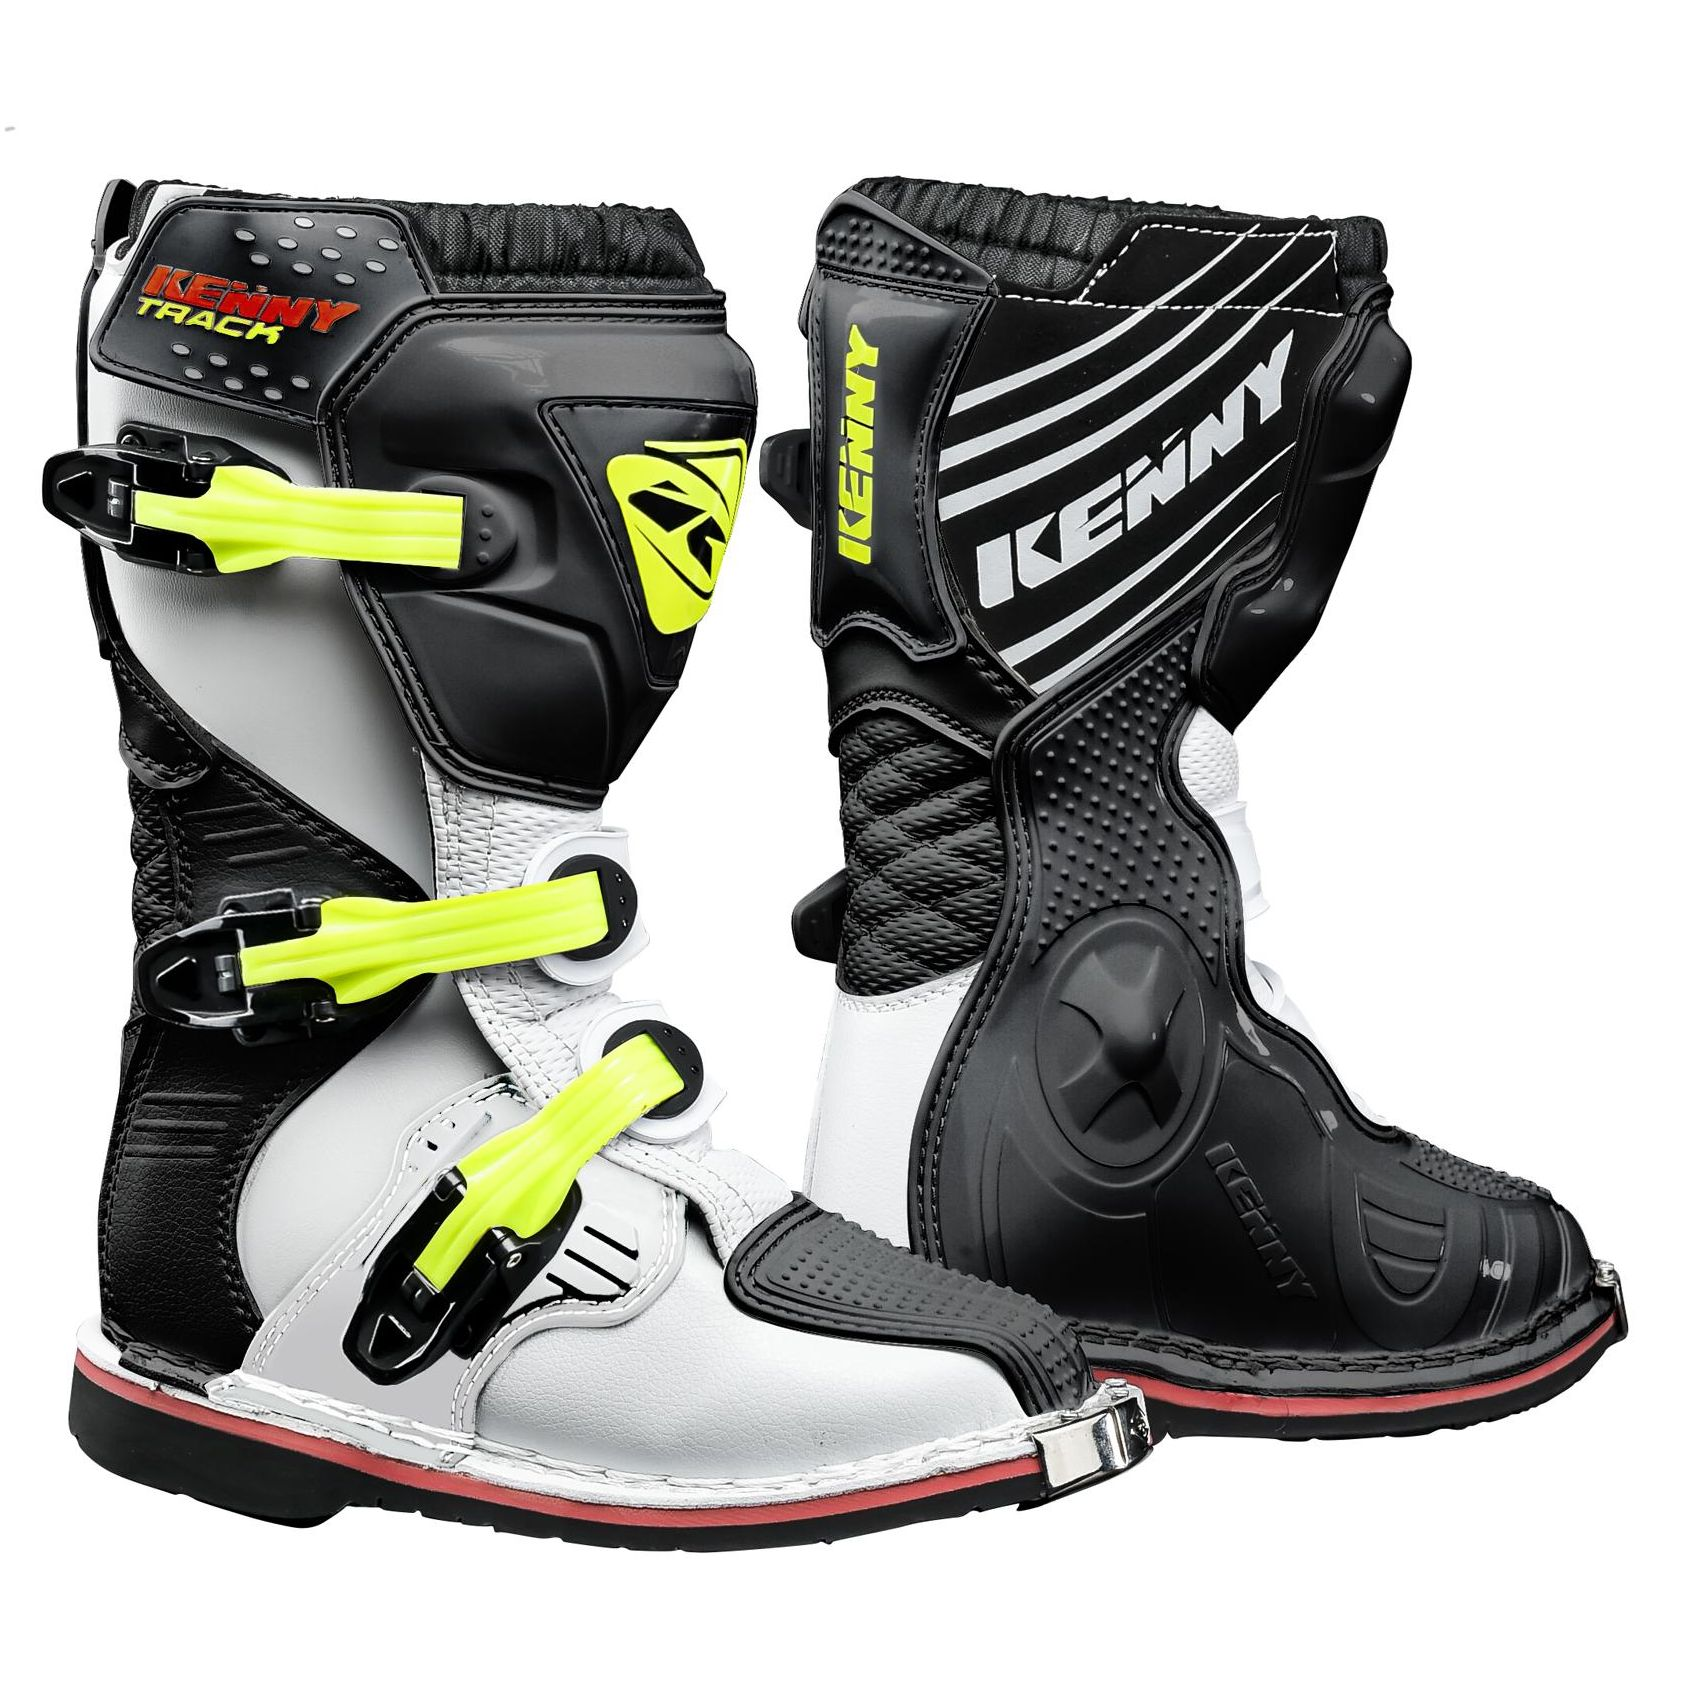 Bottes cross Kenny TRACK JUNIOR - BLANC NOIR JAUNE FLUO